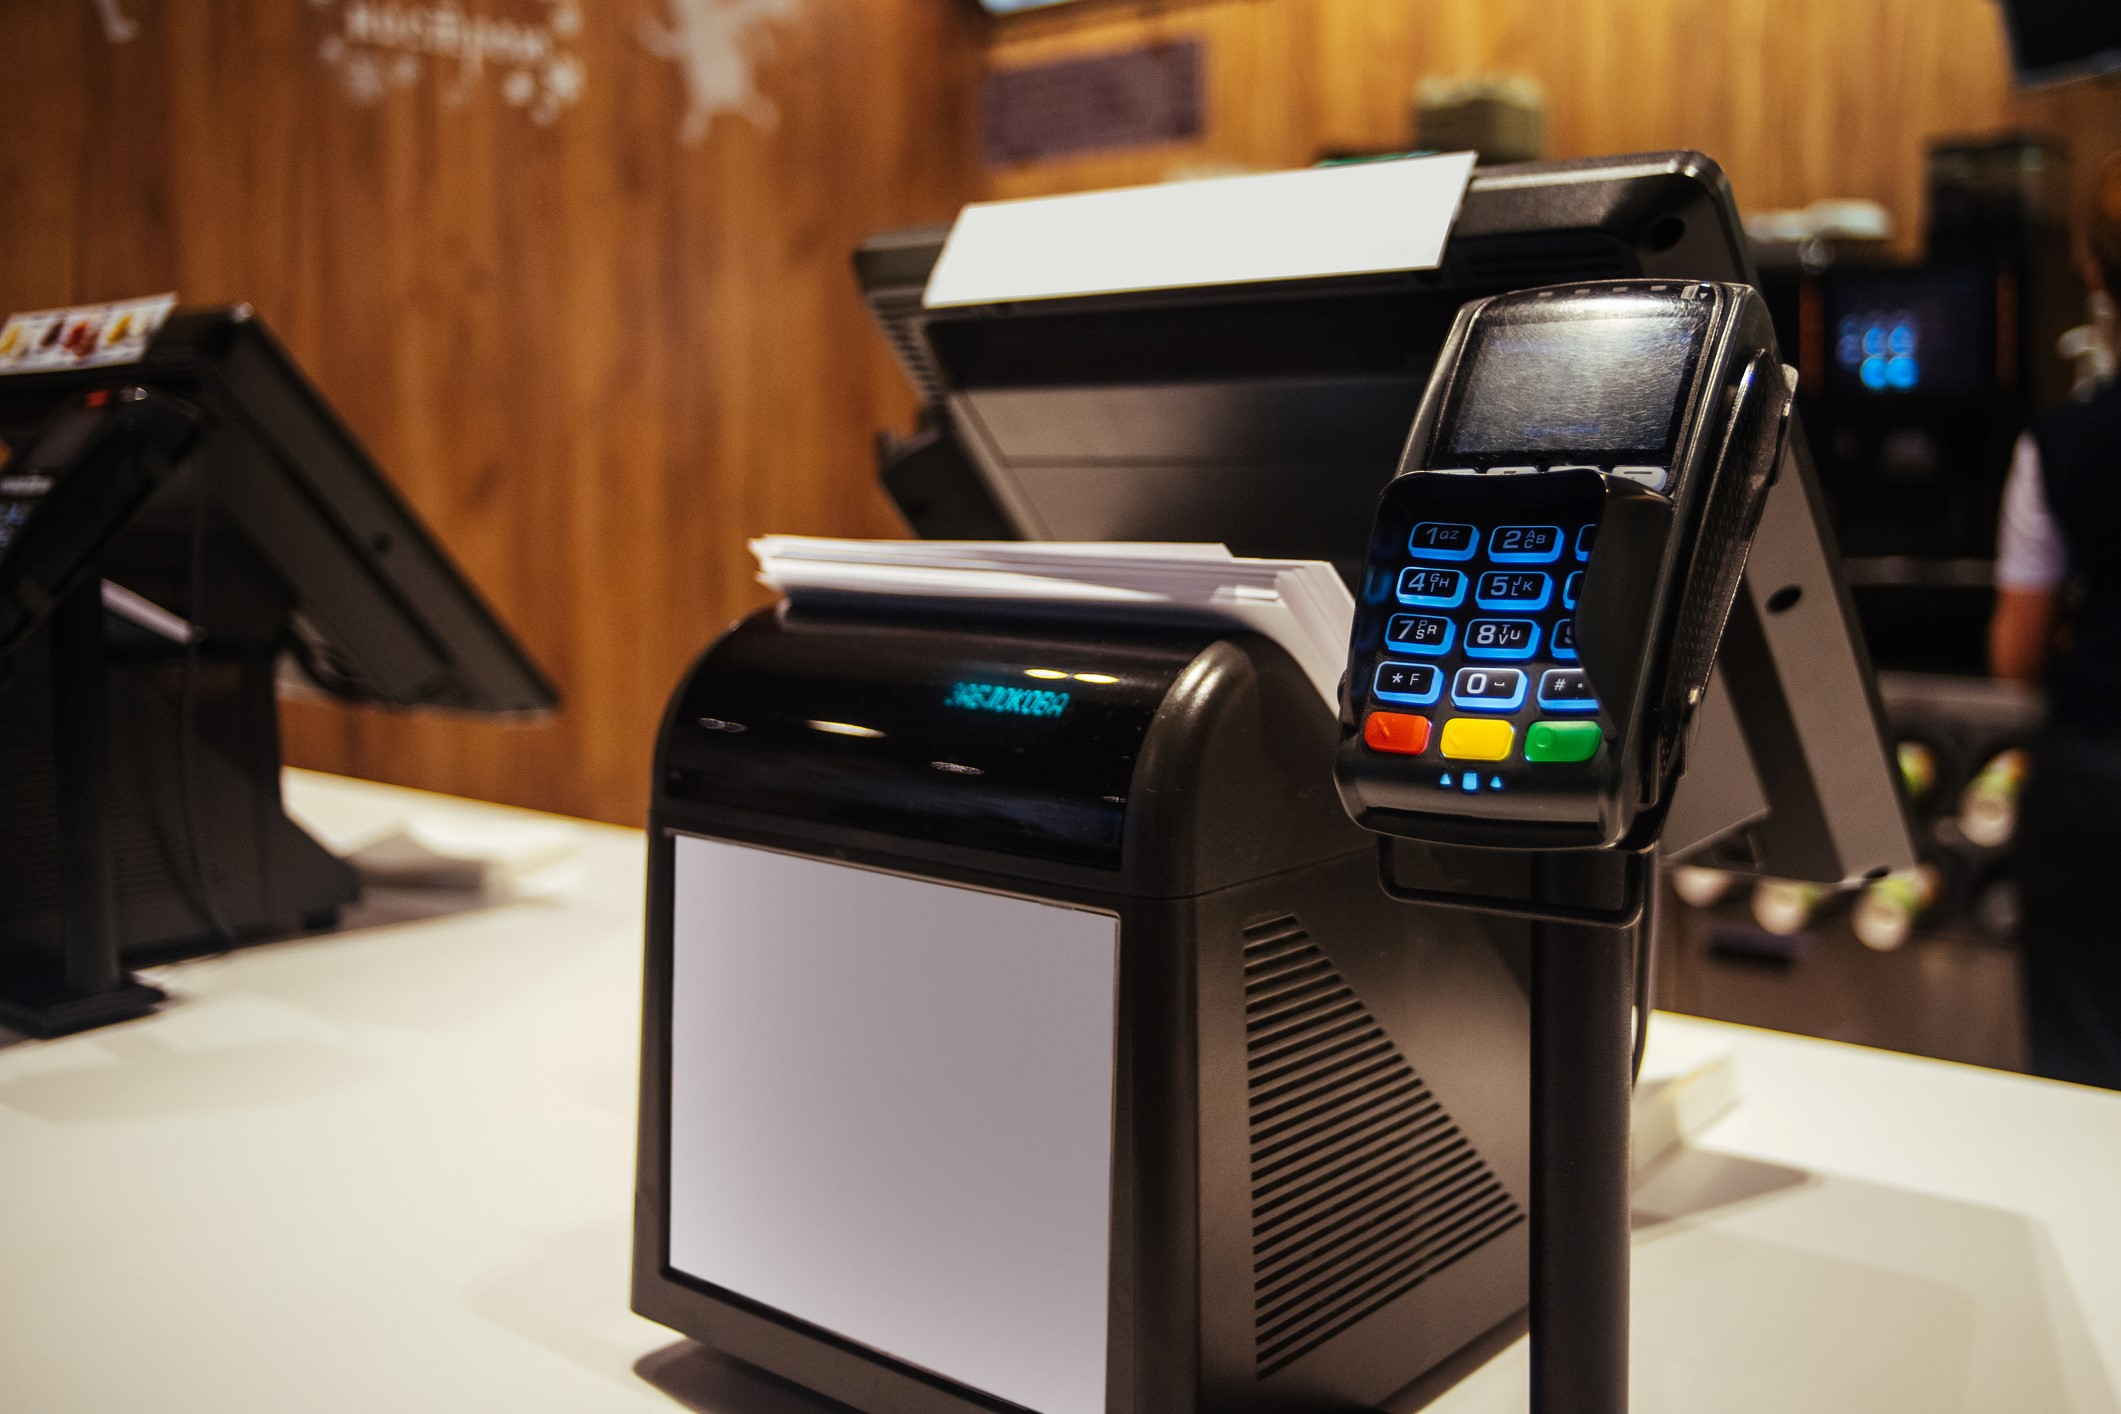 Best POS Payment Processing System in Tampa